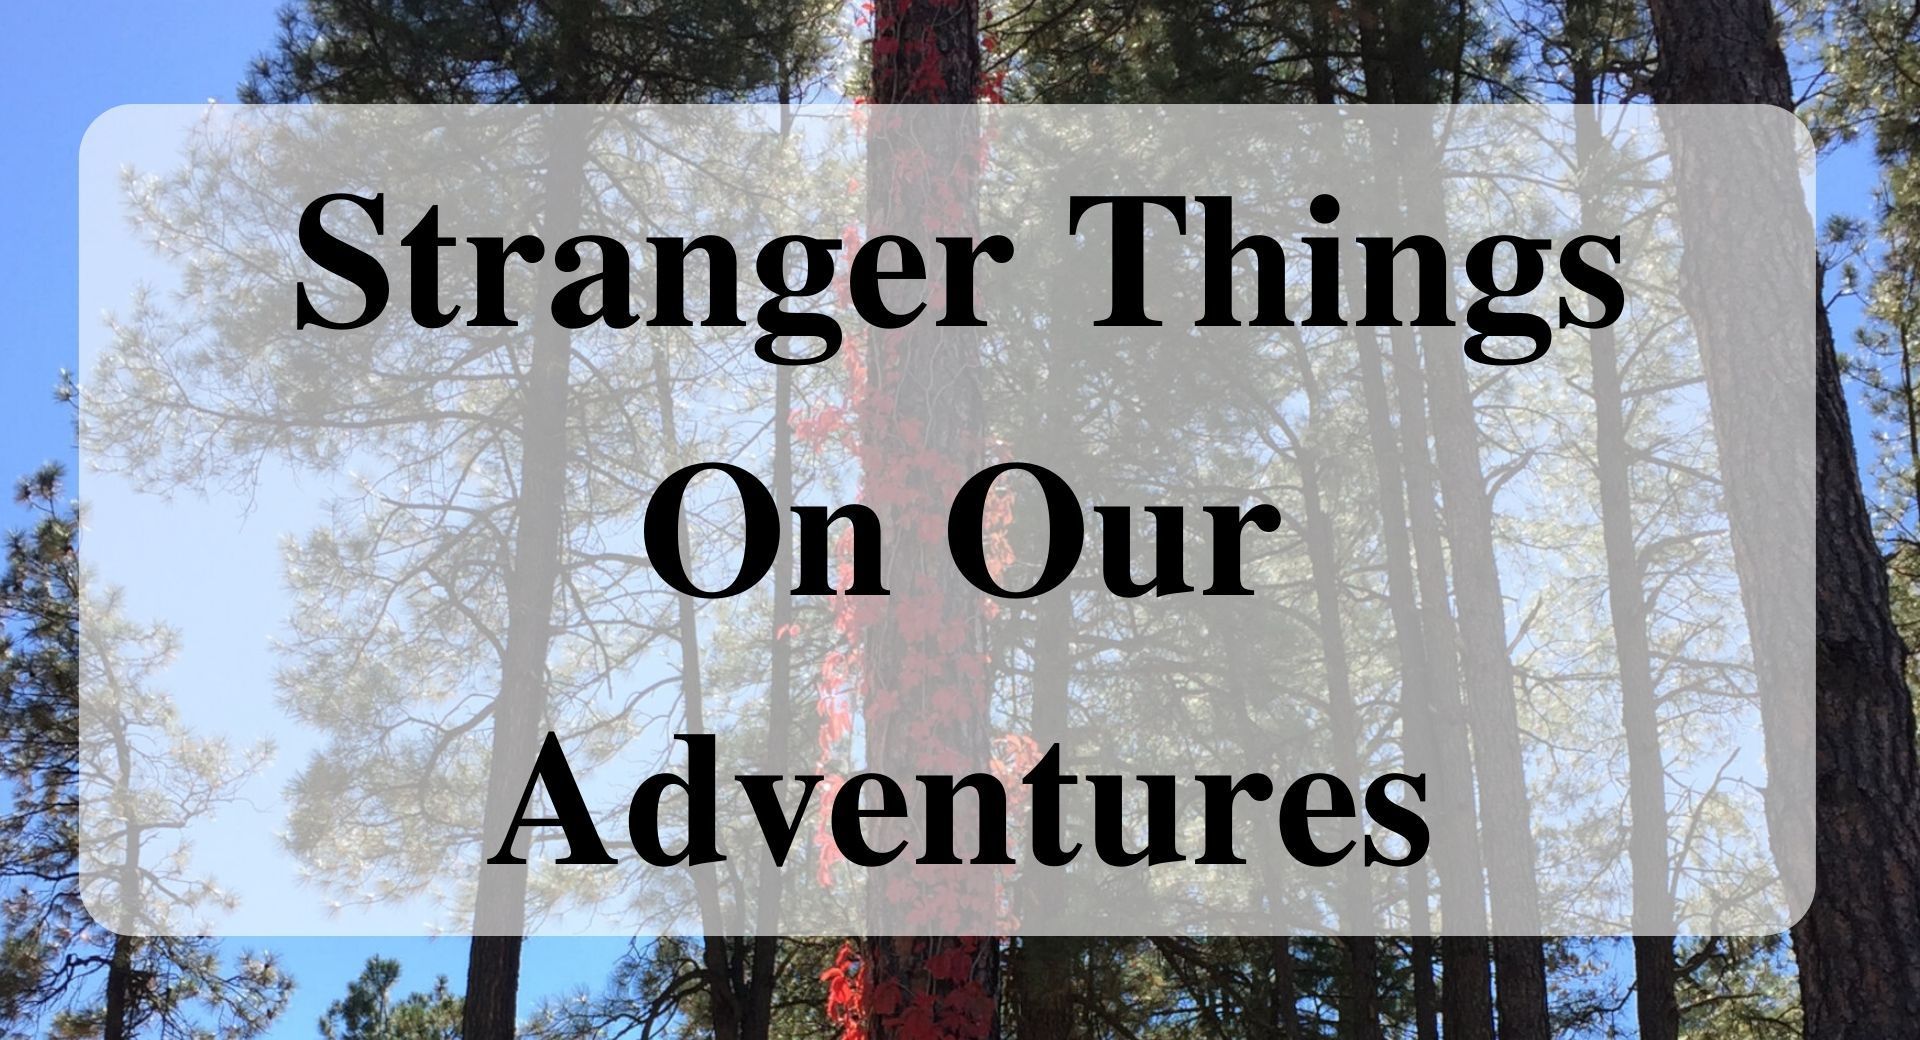 Stranger Things On Our Adventures